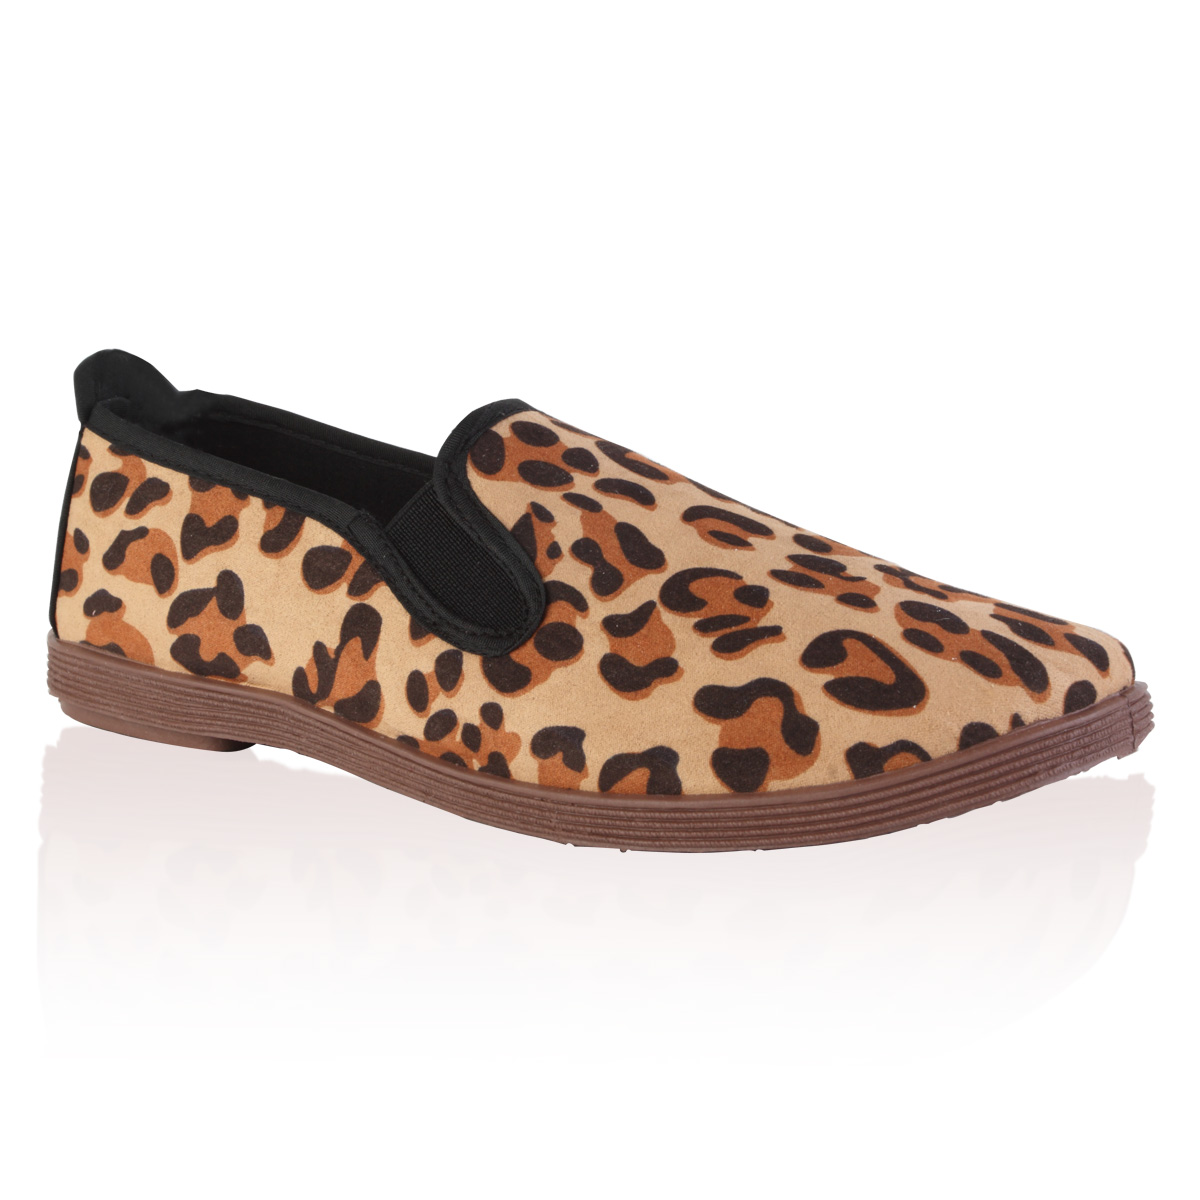 womens leopard print flat plimsoll slip on summer